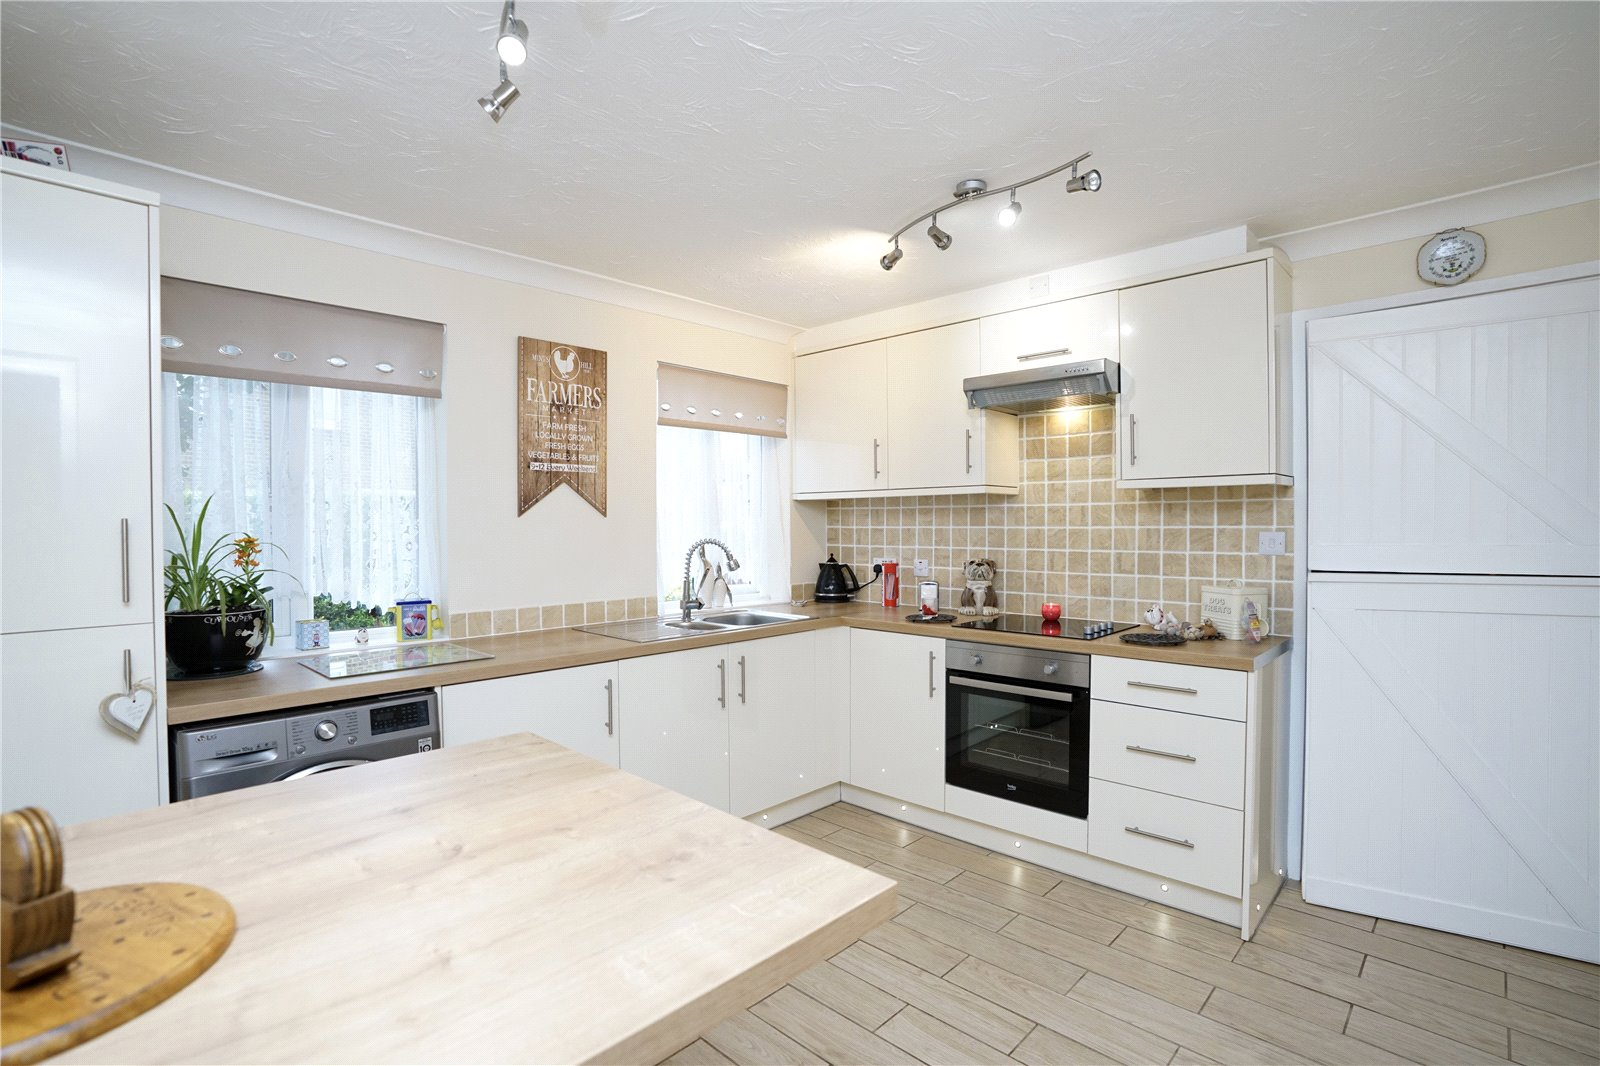 3 bed house for sale in Countess Close, Eaton Socon  - Property Image 3